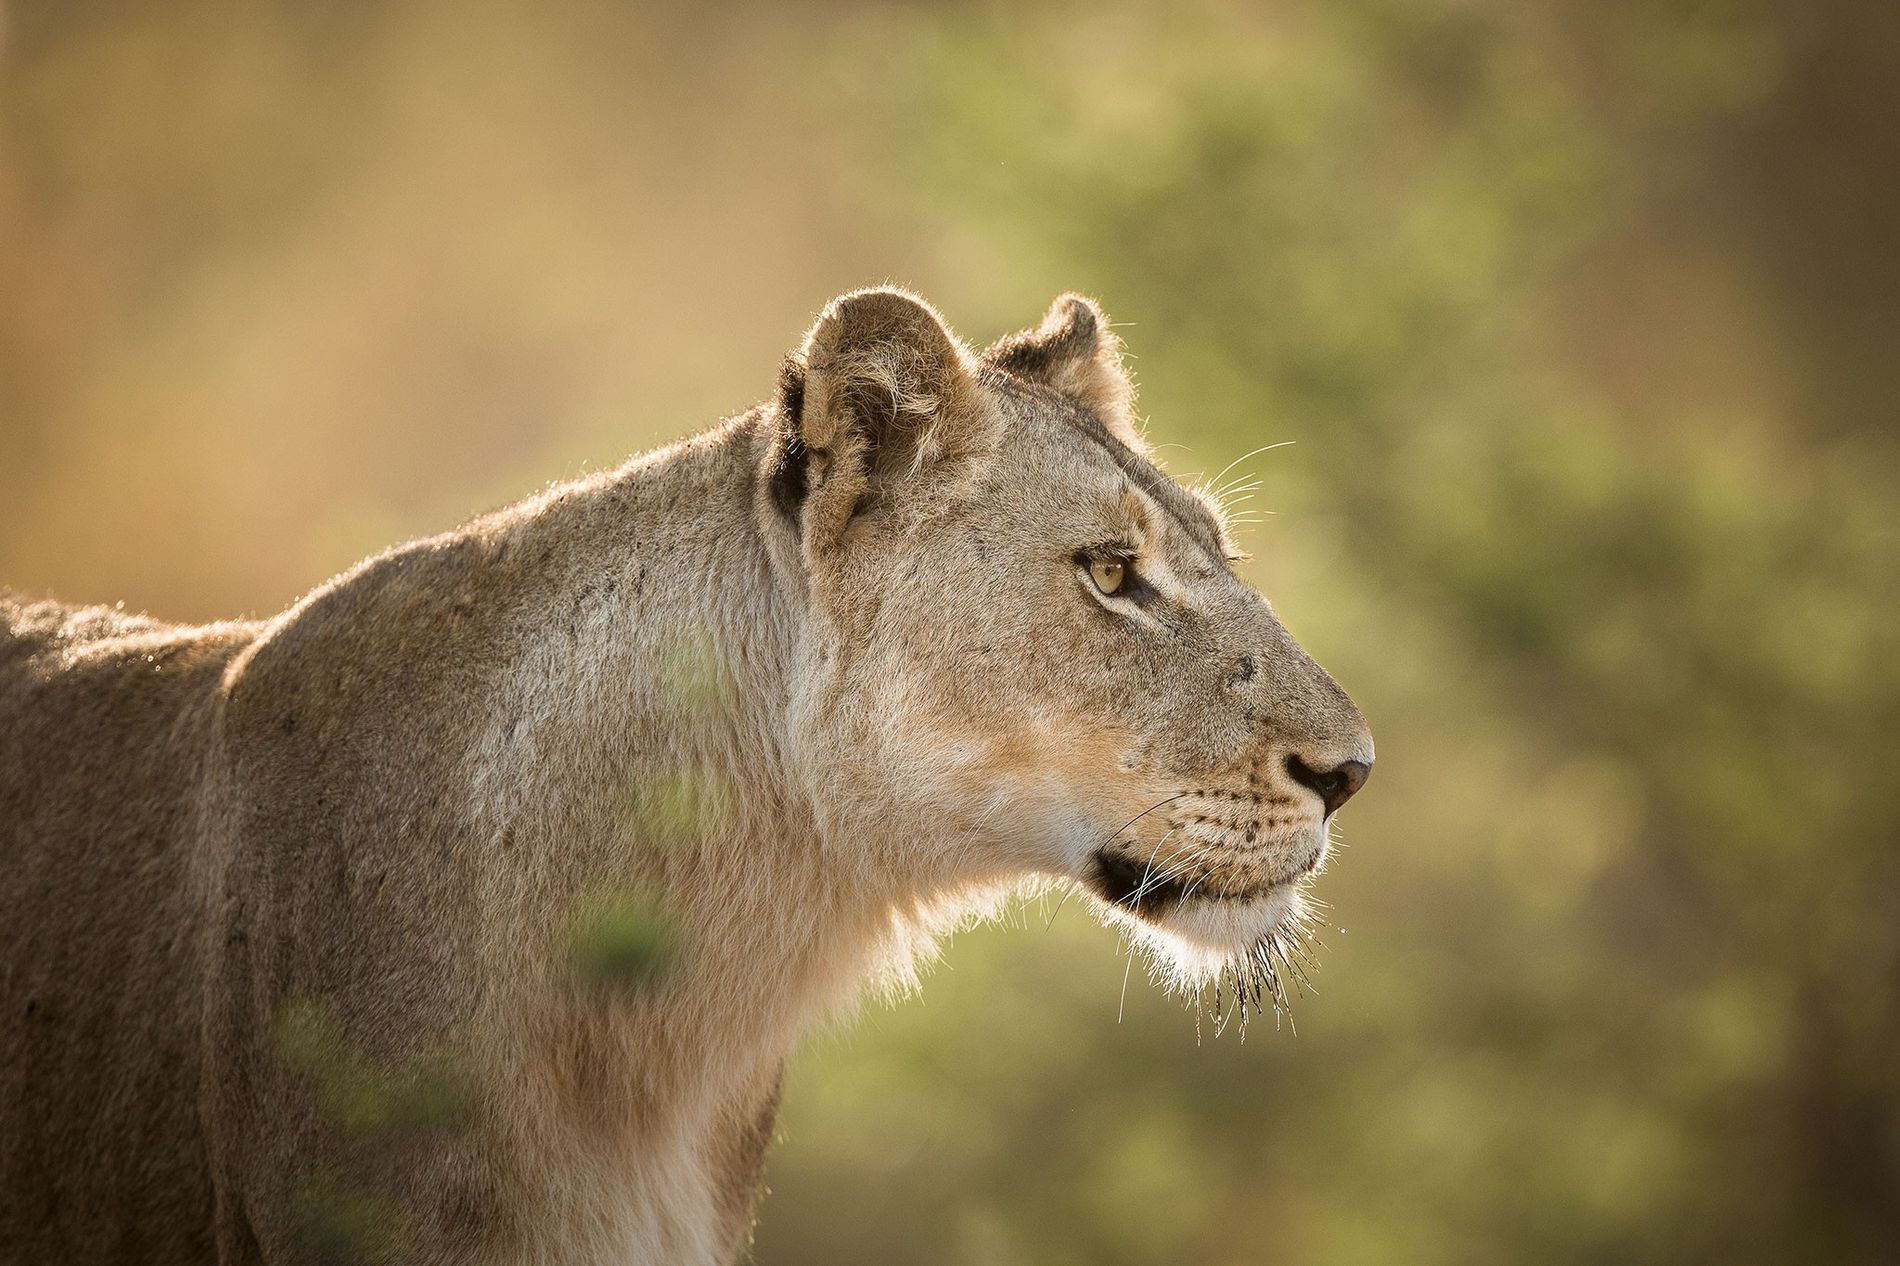 South Africa to Export 1,500 Lion Skeletons Per Year—Legally